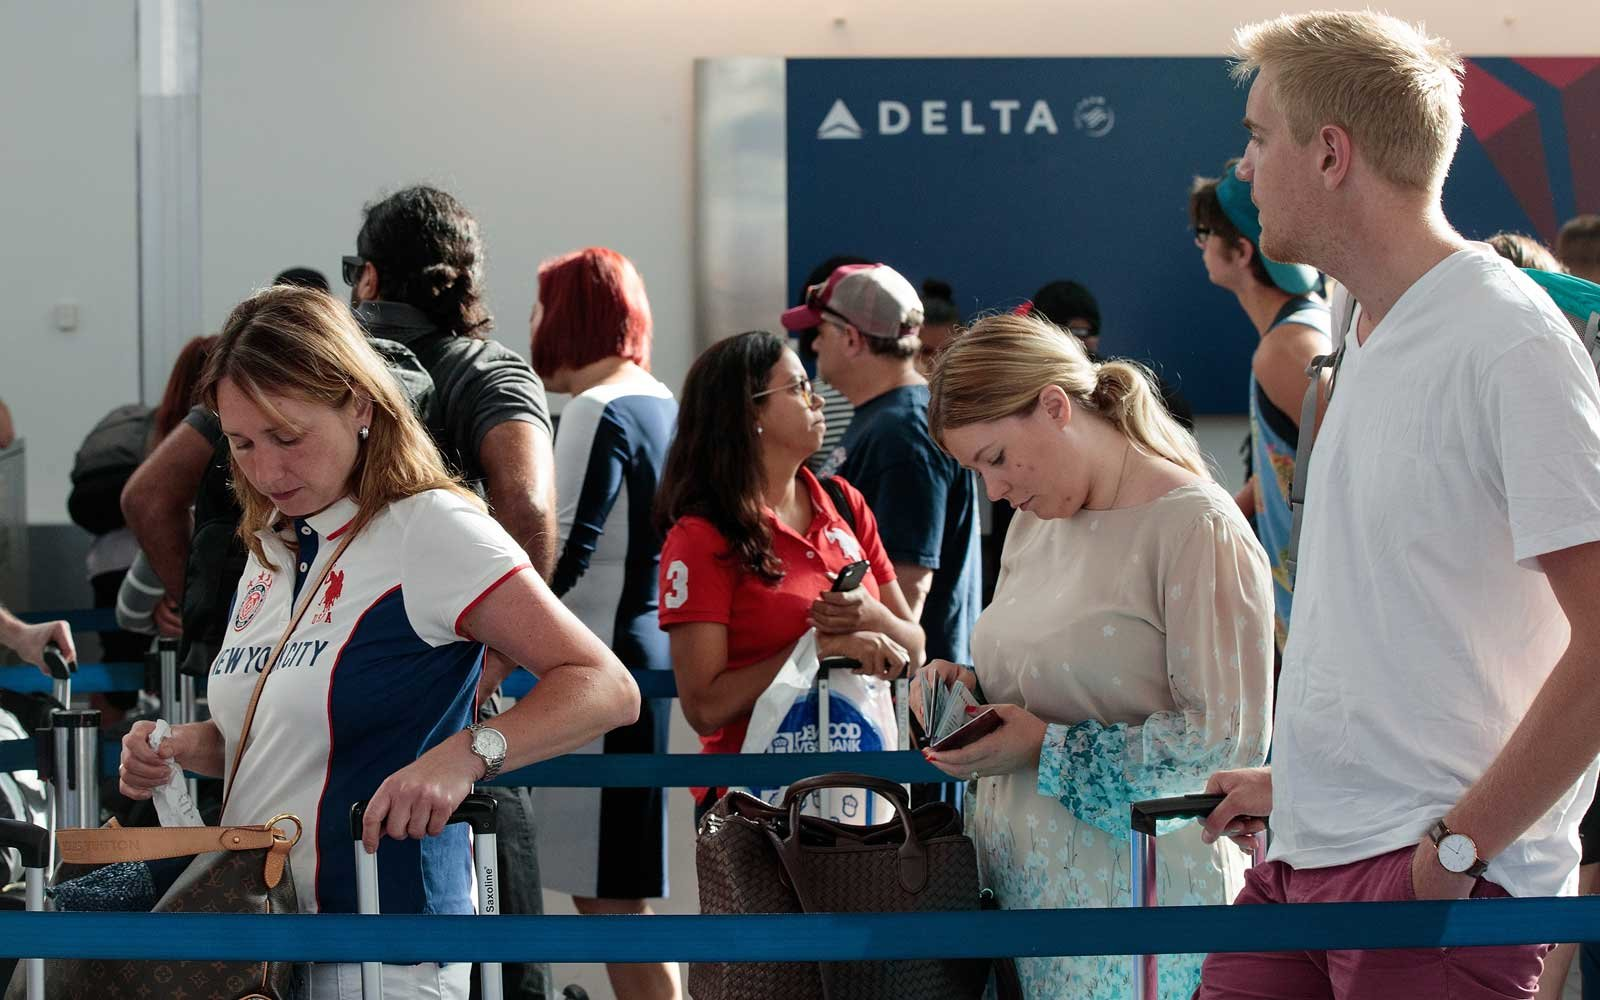 Travelers wait in line at the Delta check-in counter at LaGuardia Airport